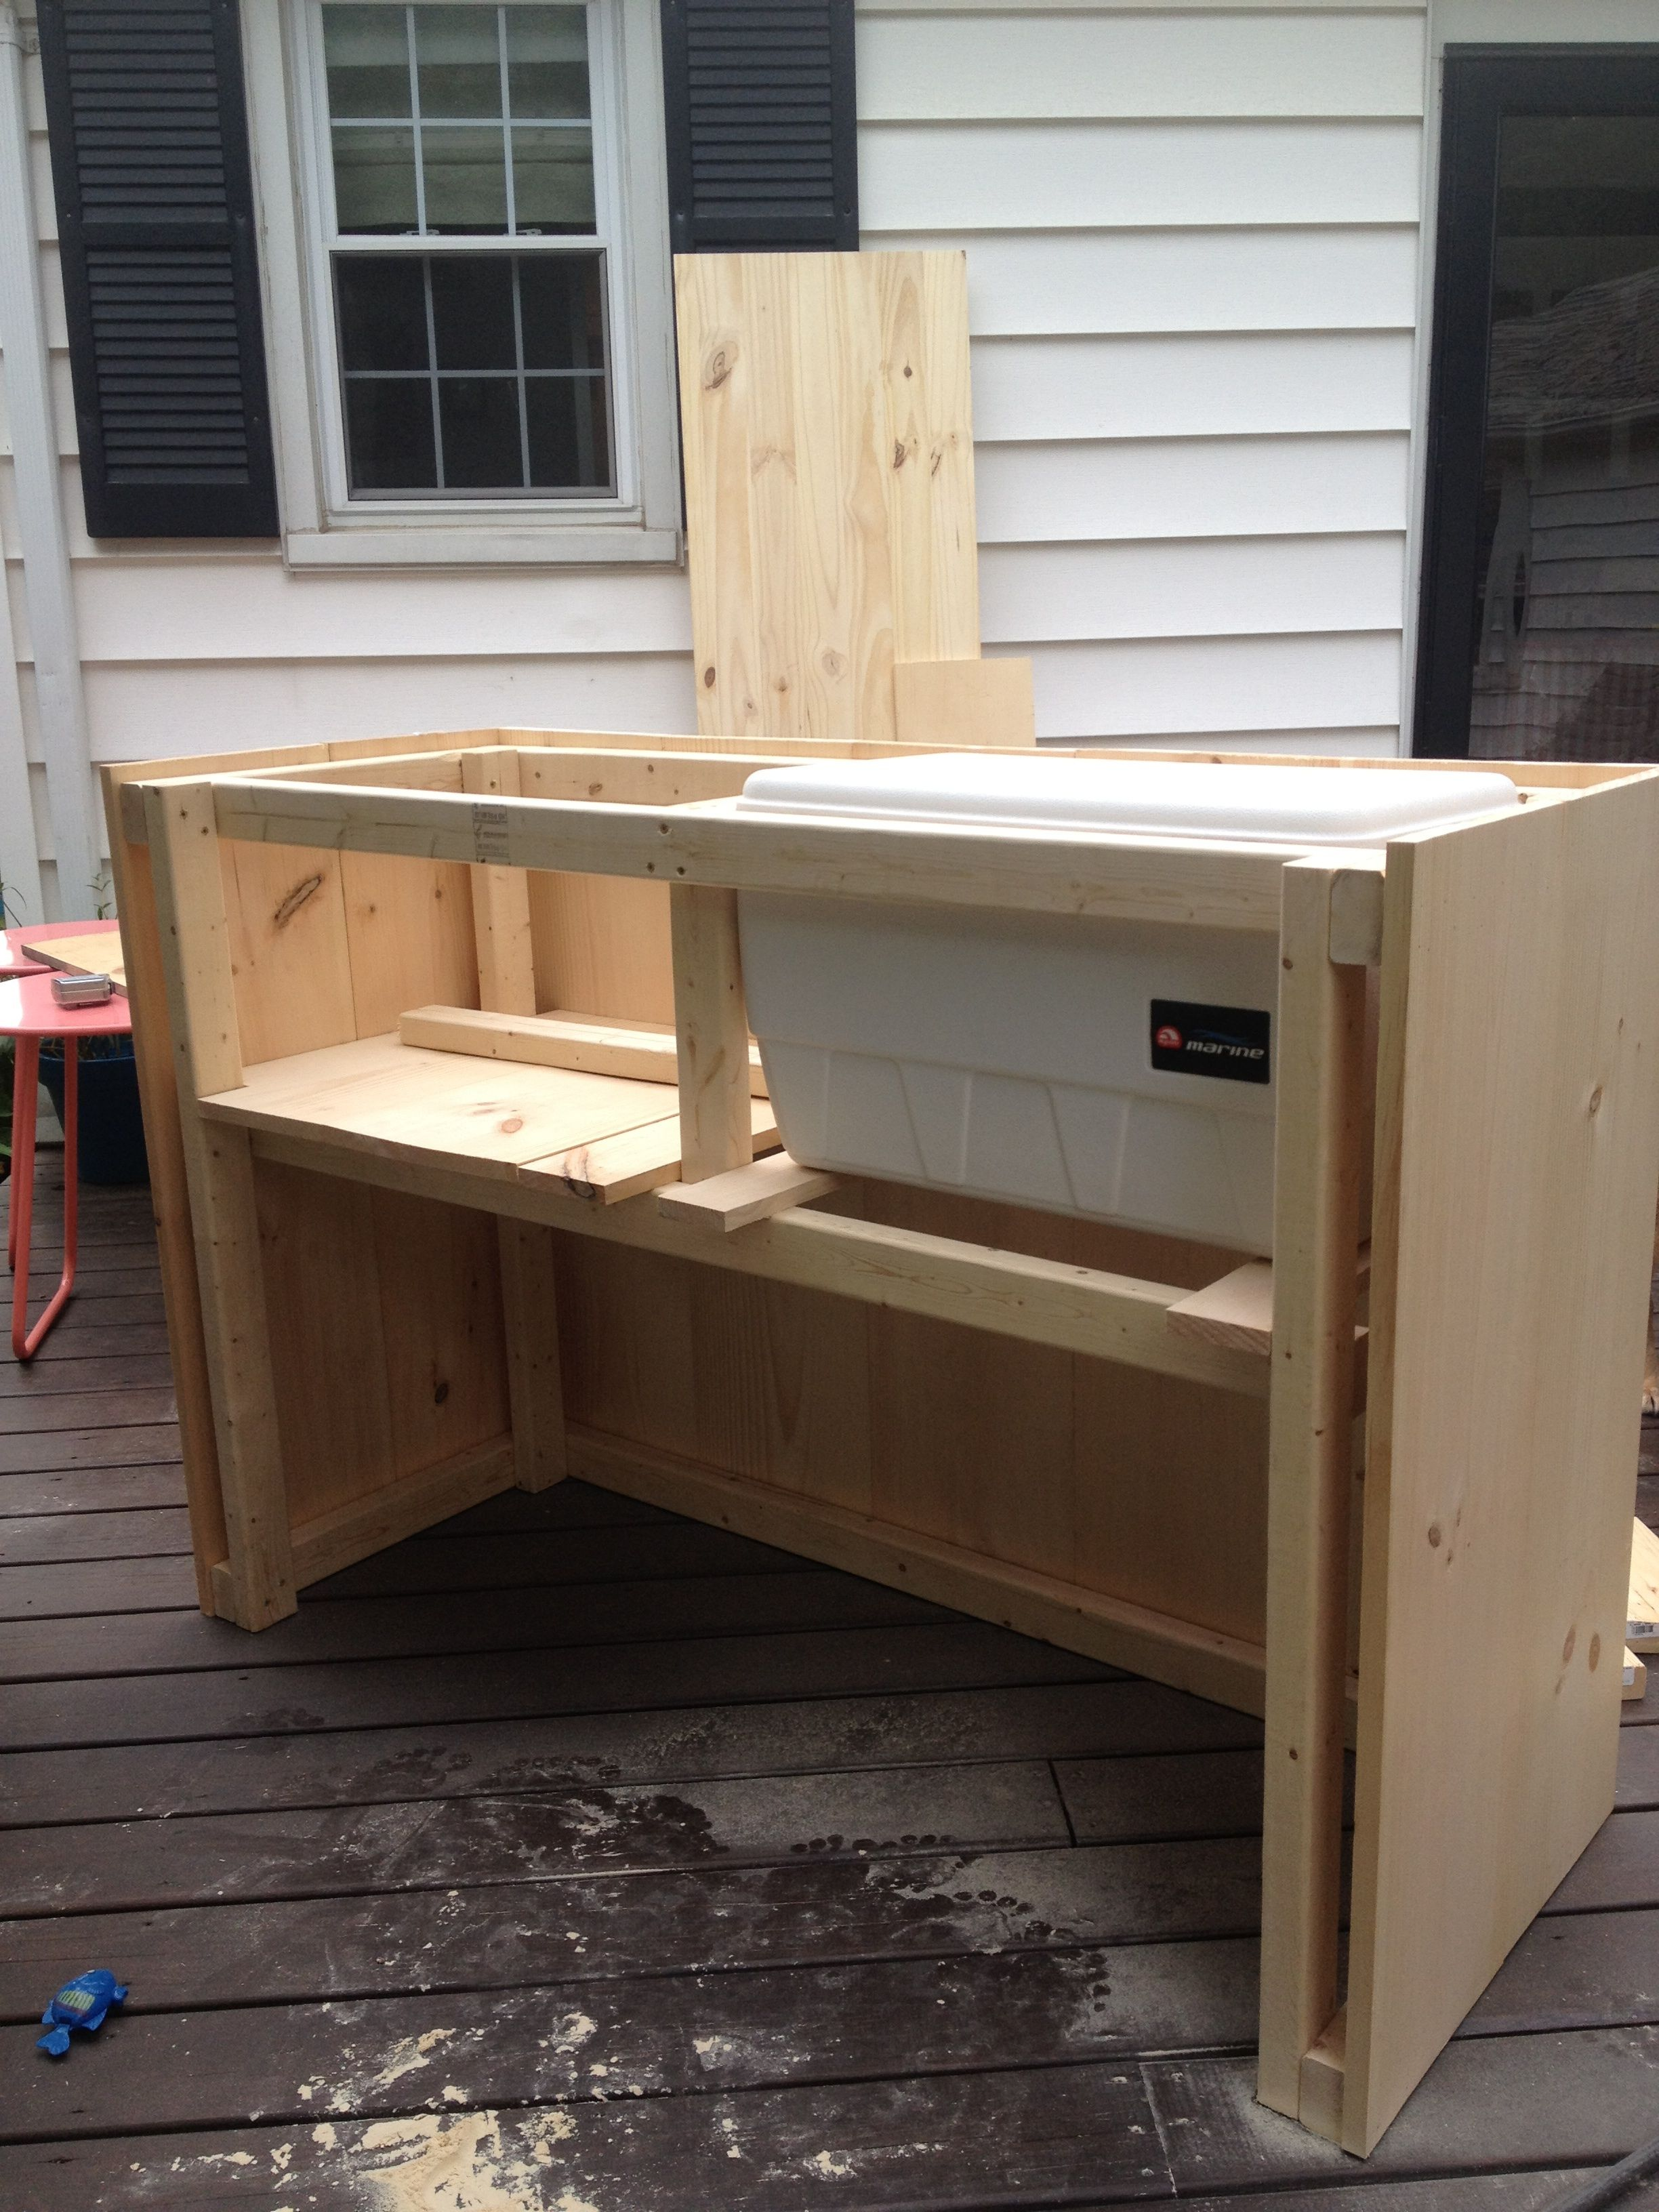 Diy steps for outdoor bar with built in cooler bar ideas for Wooden bar design